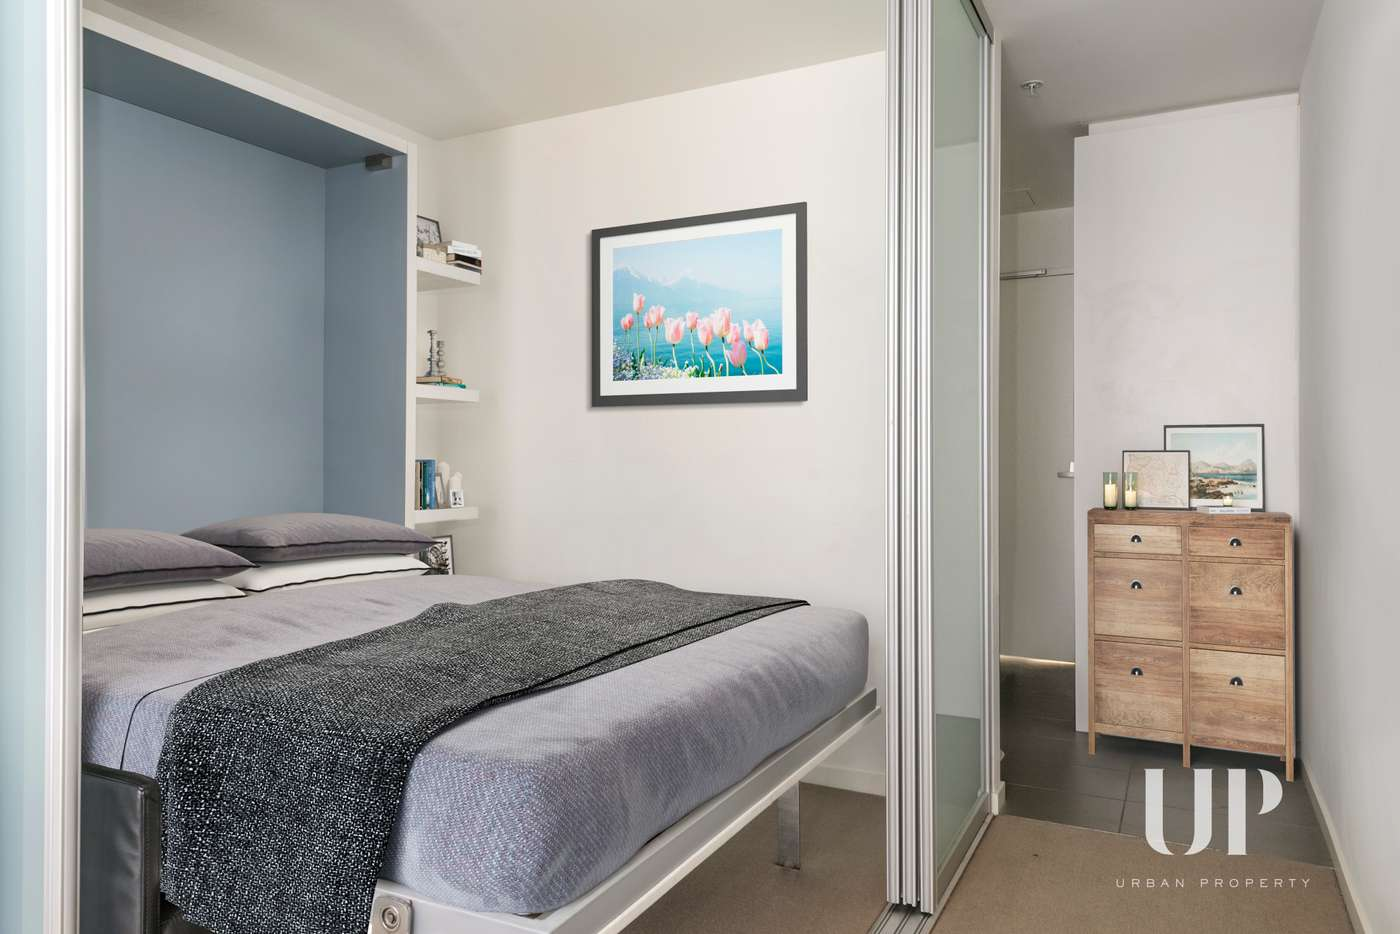 Main view of Homely apartment listing, 302/243 Franklin Street, Melbourne VIC 3000